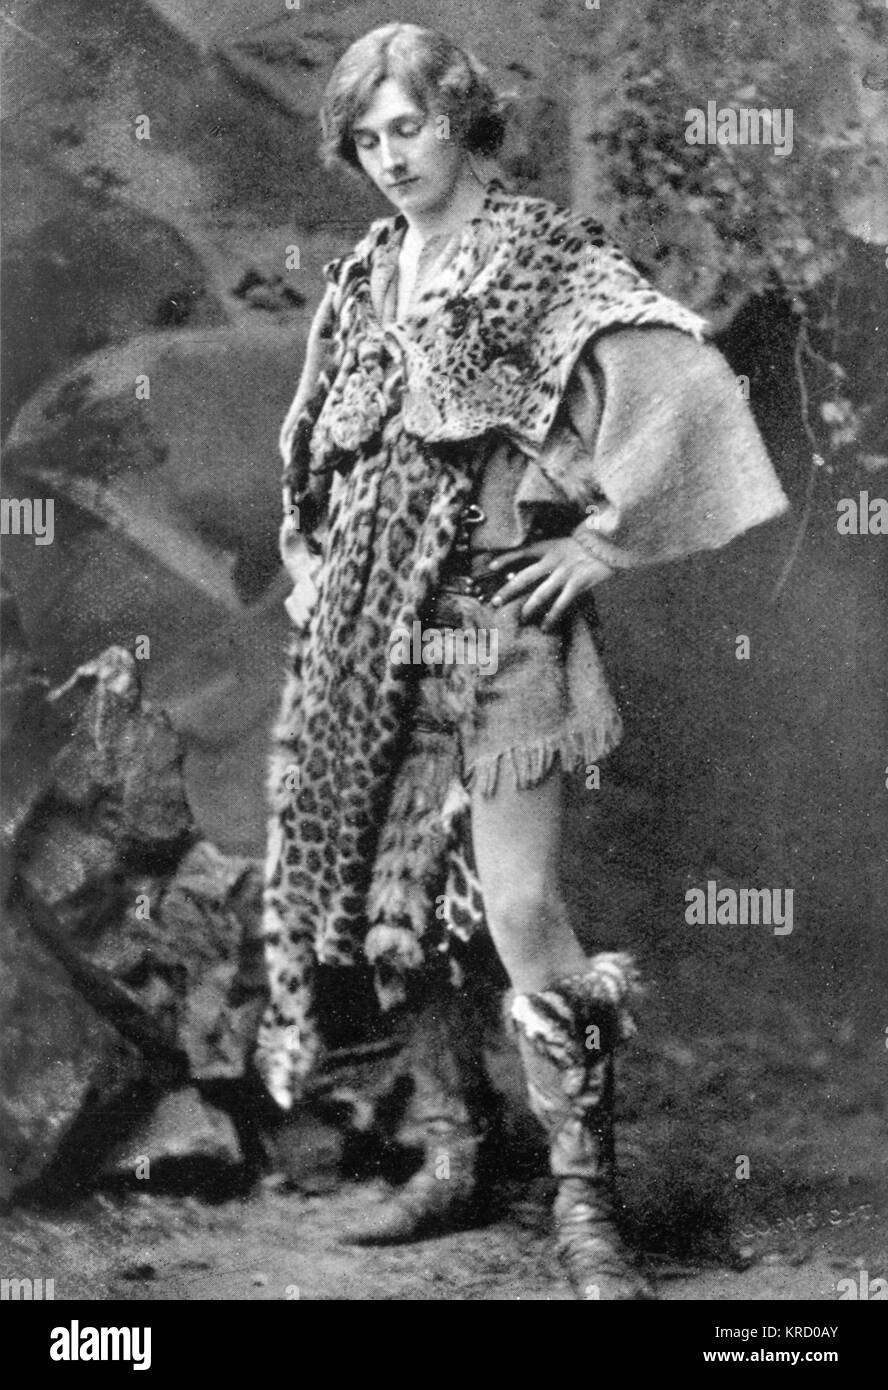 EDWARD GORDON CRAIG Actor and stage designer in the role of  Arviragus in Shakespeare's Cymbeline, c.1905   - Stock Image